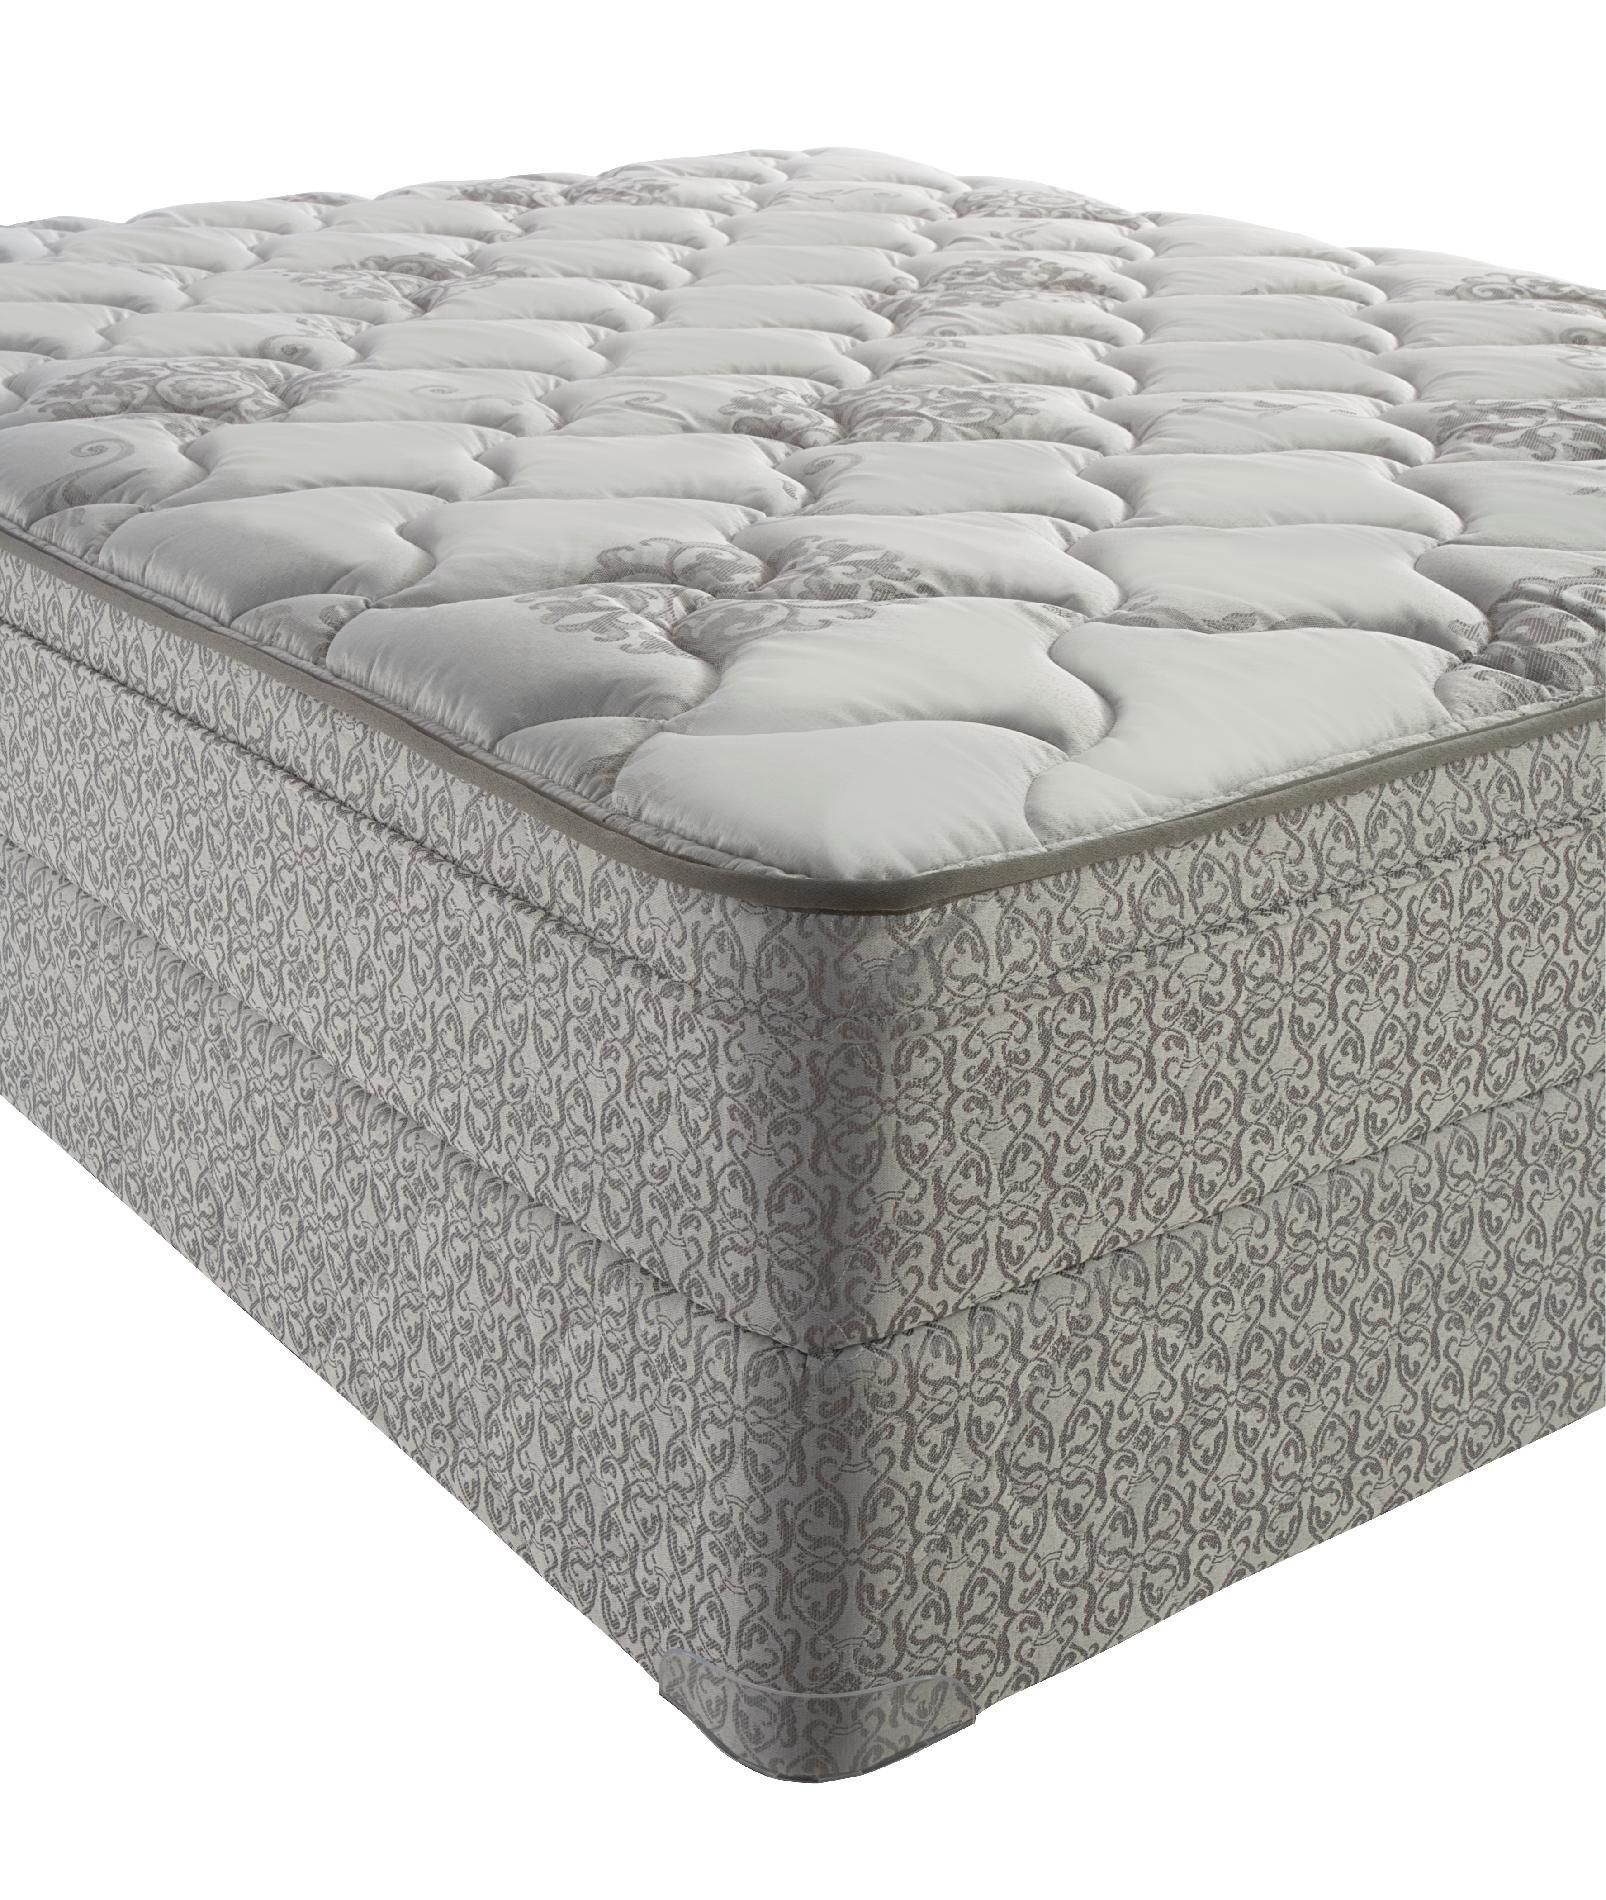 Tambour-Select-Plush-Euro-Pillowtop-Queen-Mattress-Only